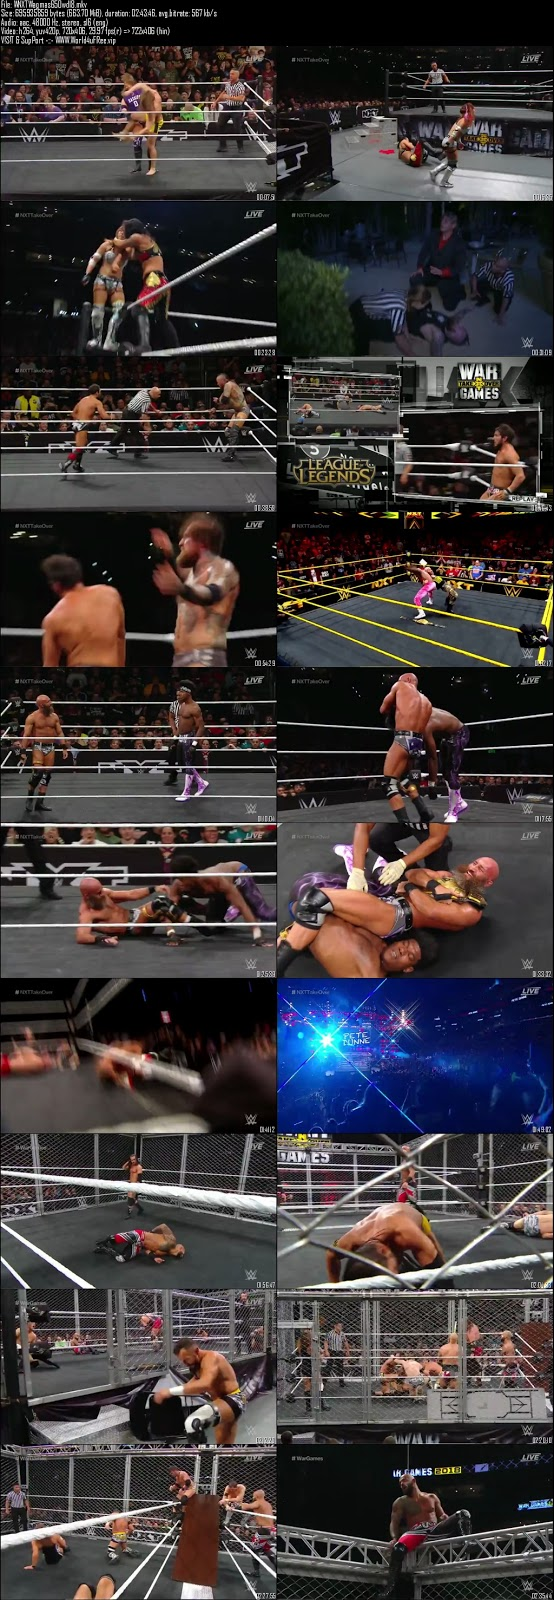 Wwe Nxt Takeover Wargames II 18 November 2018 Download tv show wwe Wwe Nxt Takeover Wargames 18 November 2018 HDTV 720p 300MB x264 compressed small size free download or watch online at world4ufree.fun